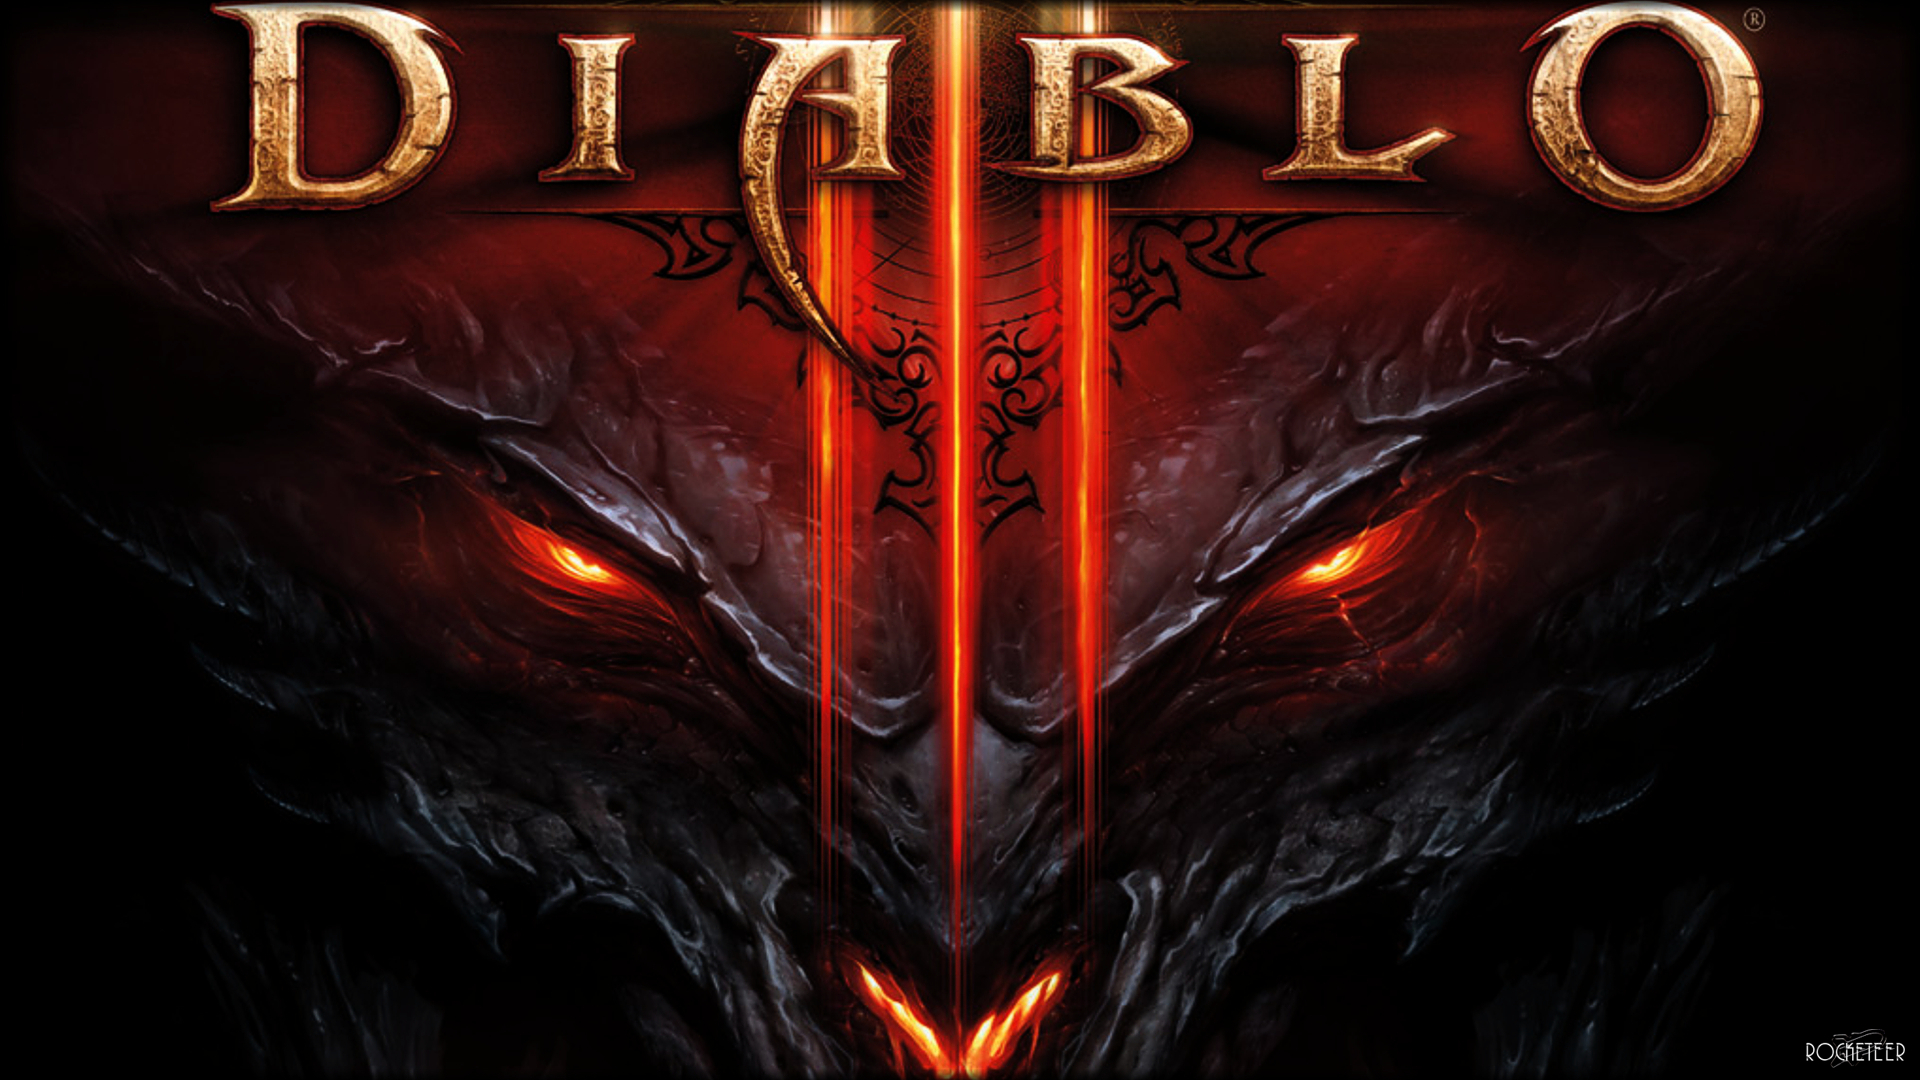 Diablo III by Blizzard Entertainment